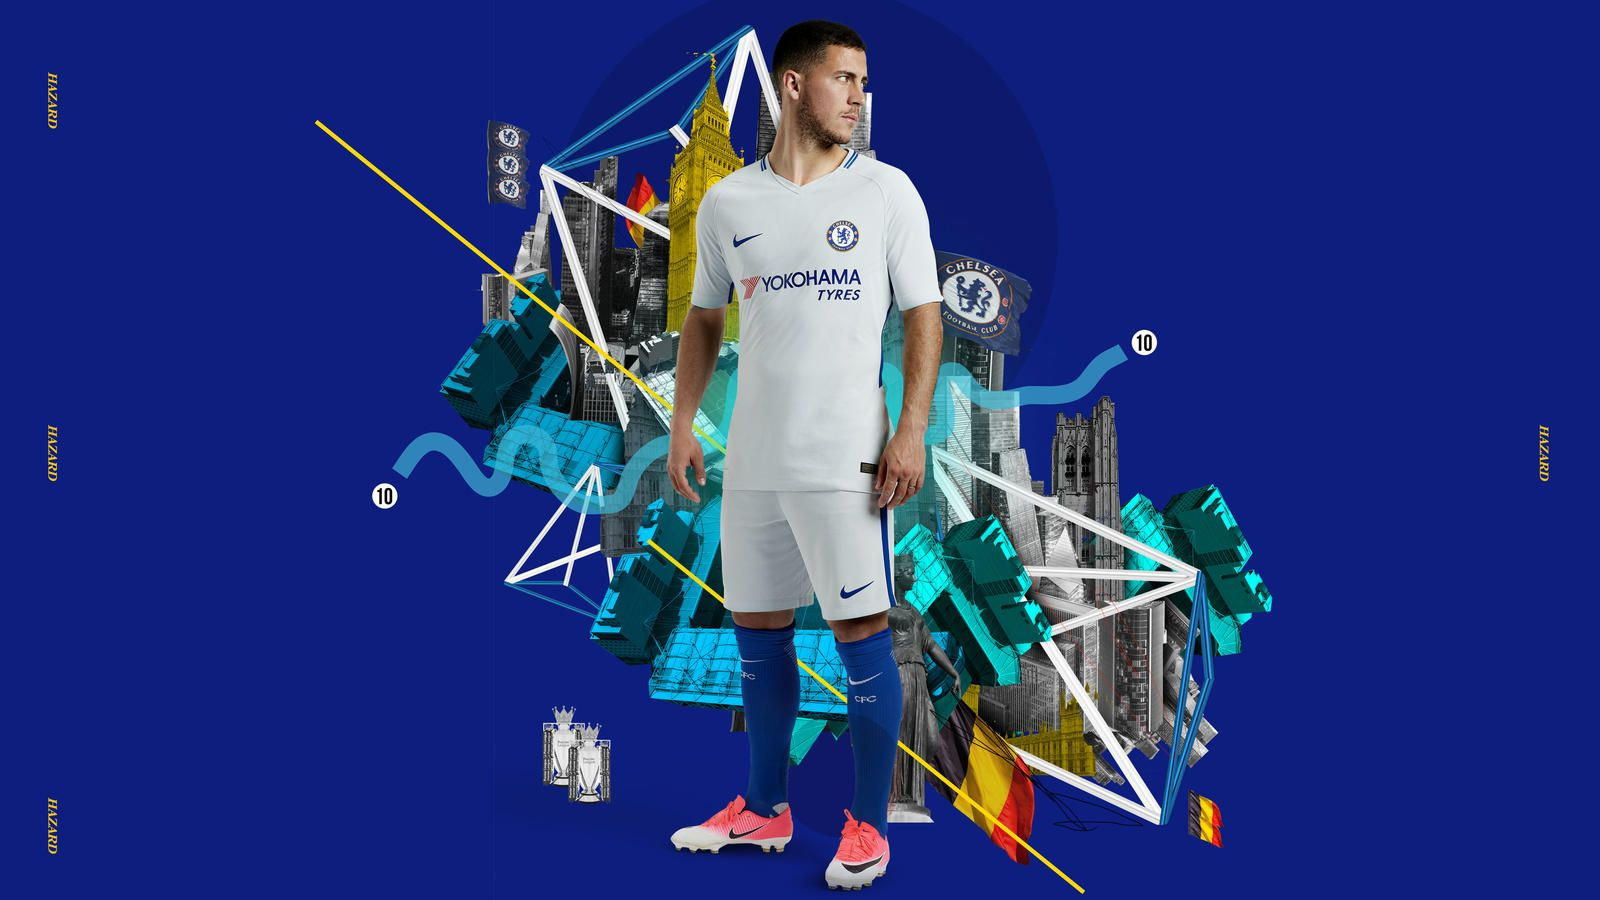 46ec27b9e Nike News - Chelsea FC and Nike Join Forces To Unveil Home and Away Kits